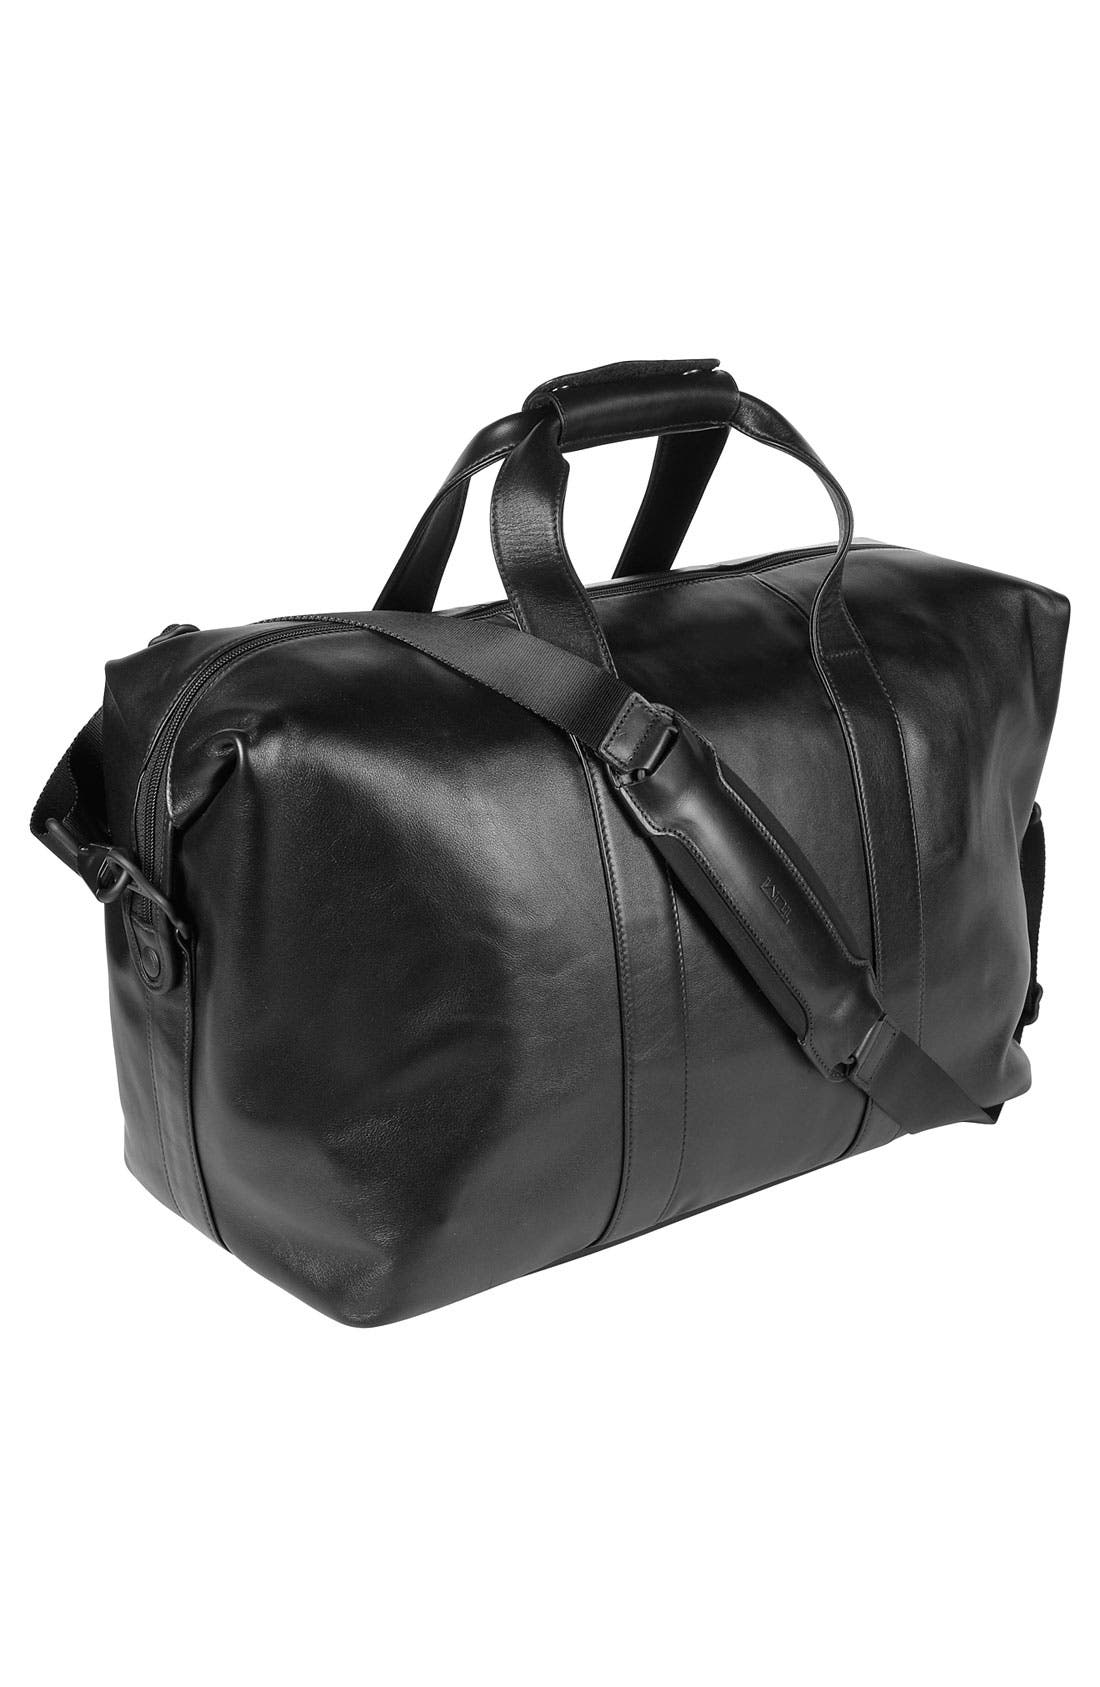 Alternate Image 1 Selected - Tumi 'Small Alpha' Soft Leather Travel Satchel